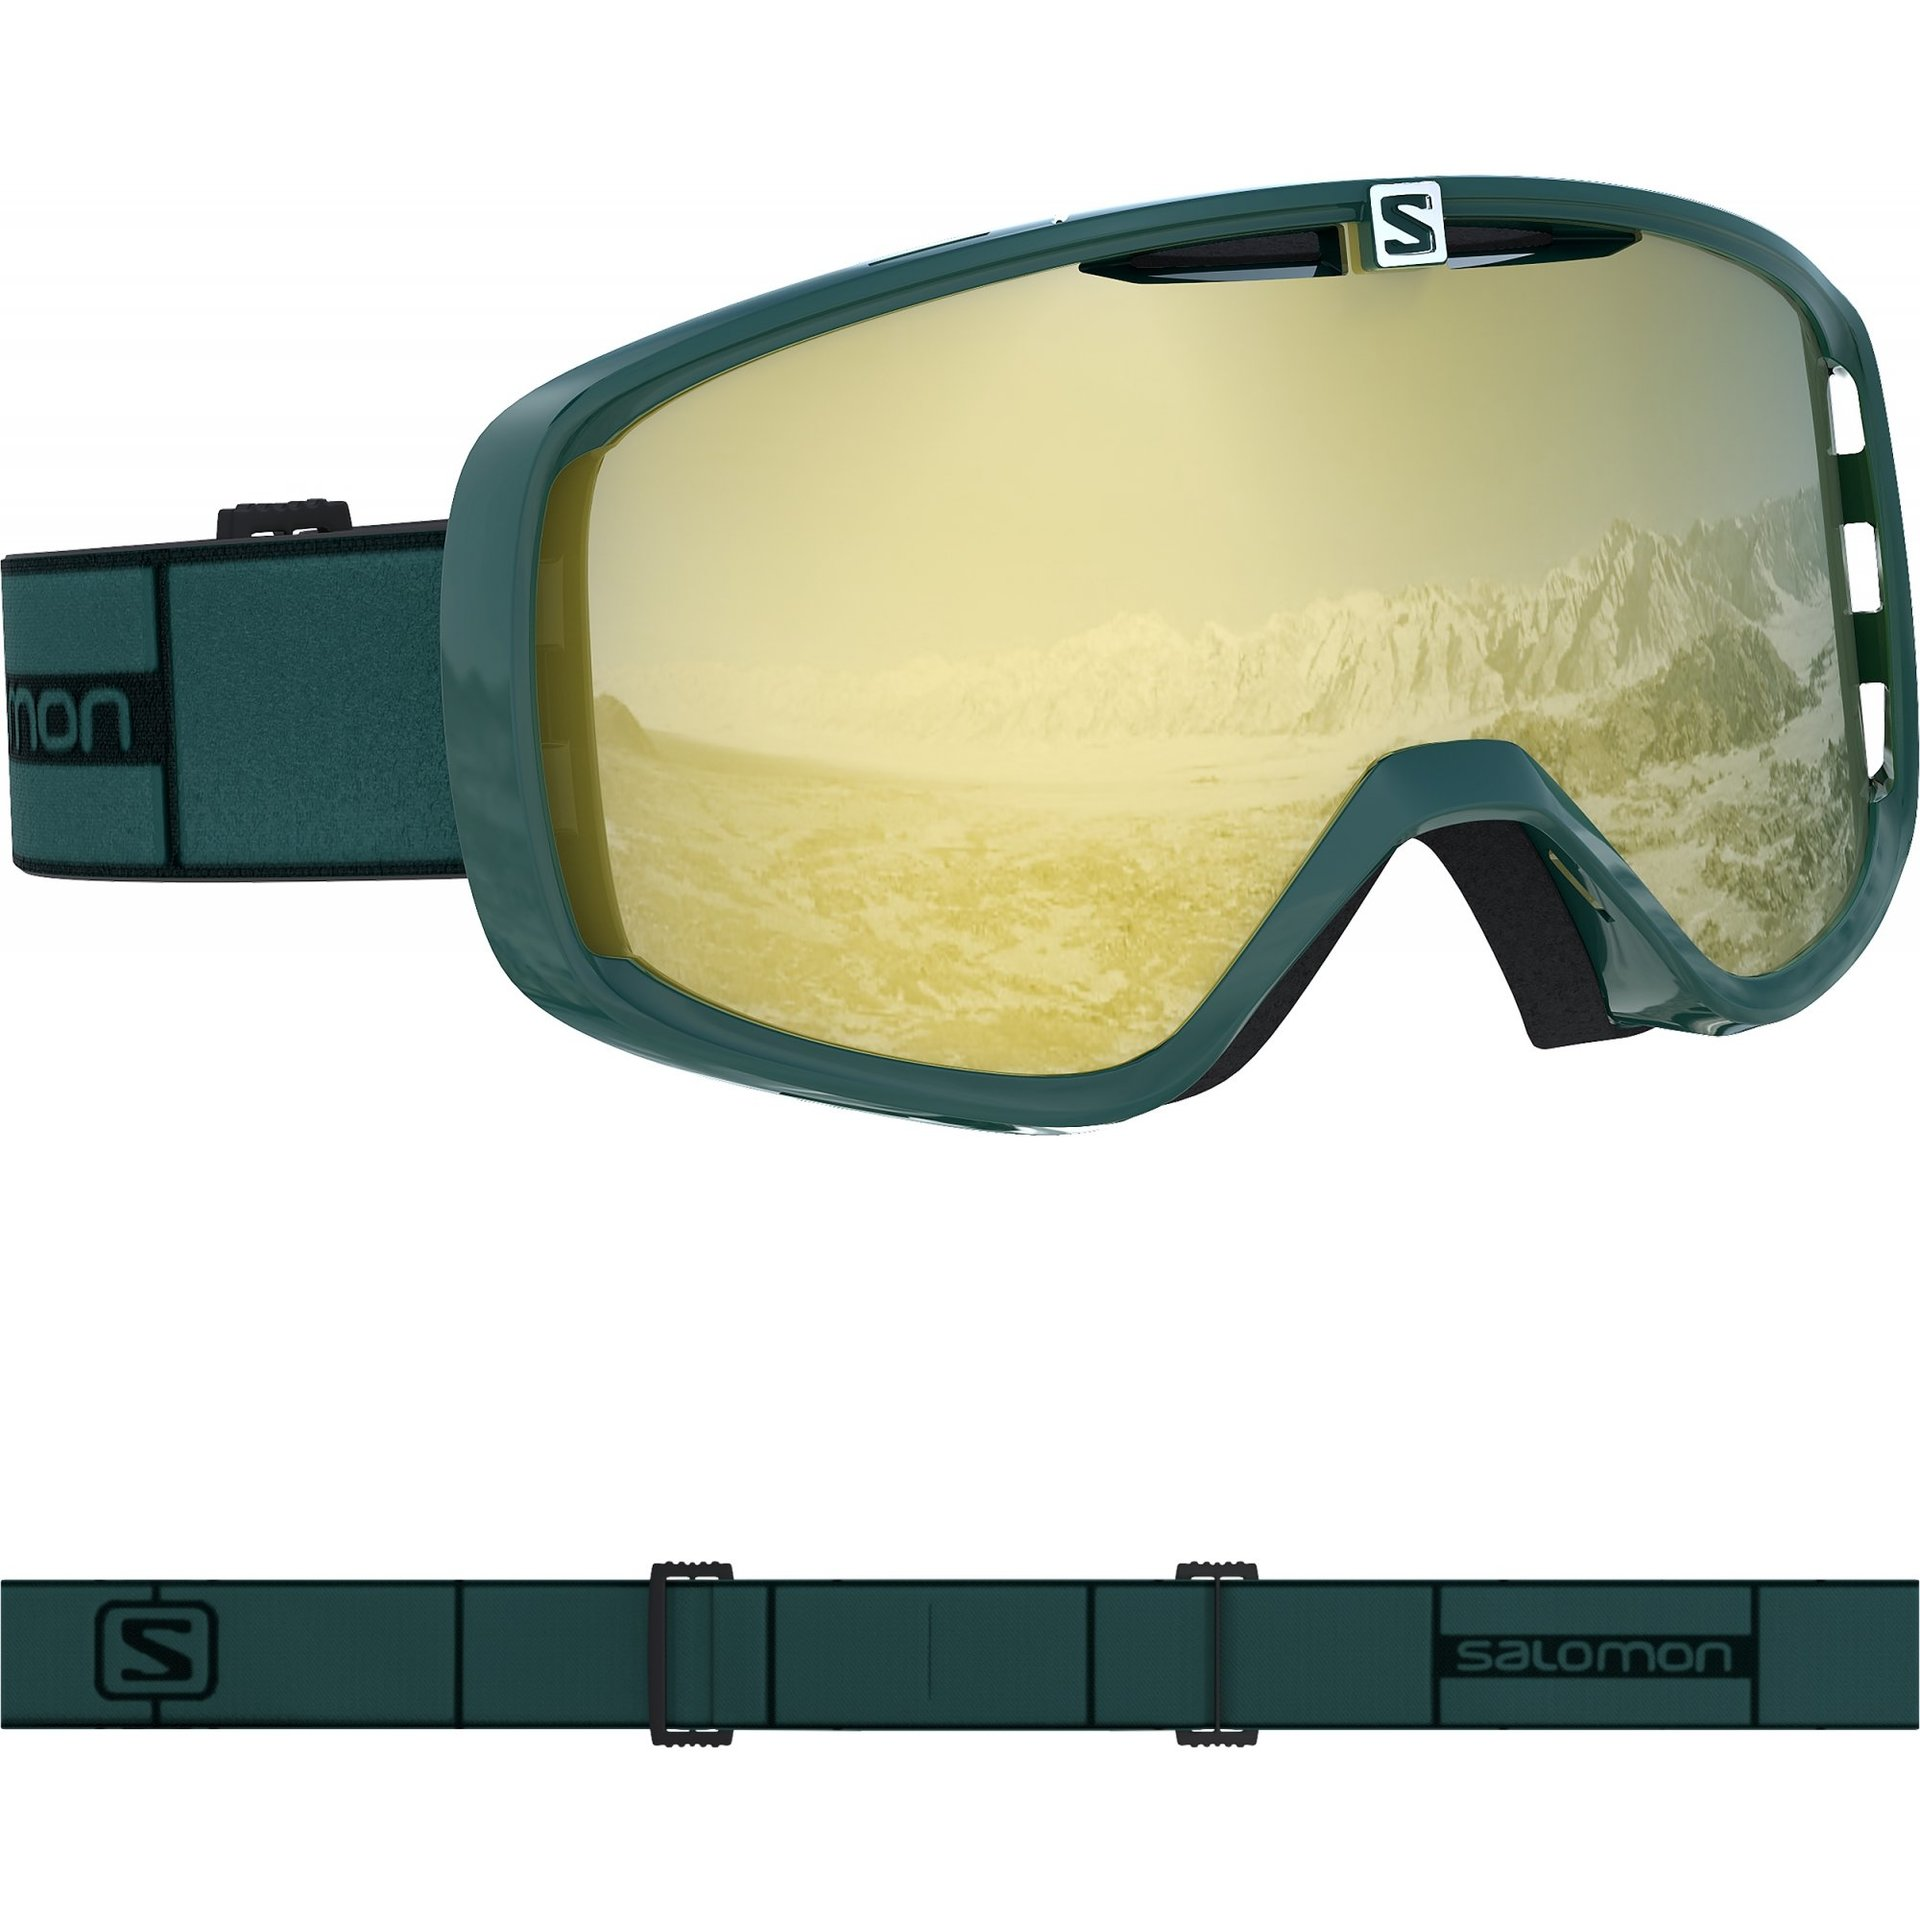 GOGLE SALOMON AKSIUM GREEN GABLE|BRONZE L408452